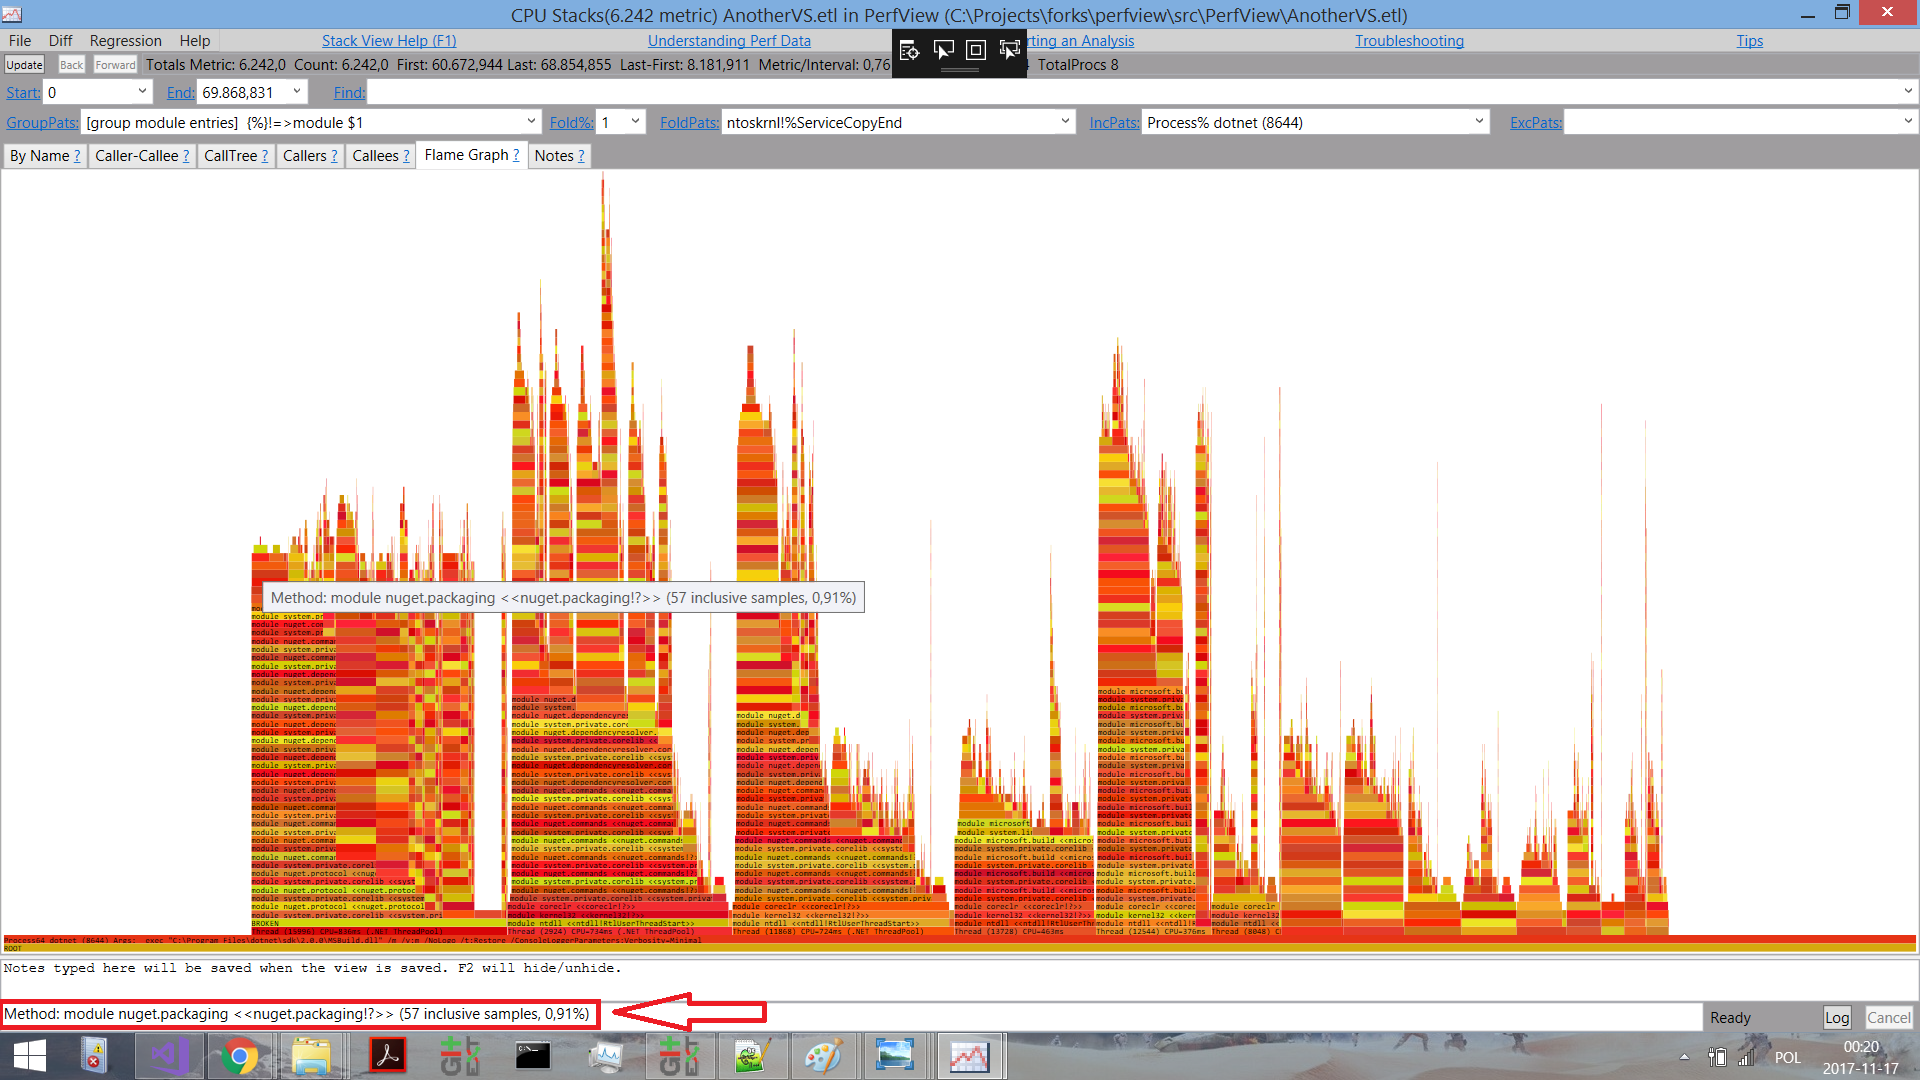 PerfView Flamegraphs